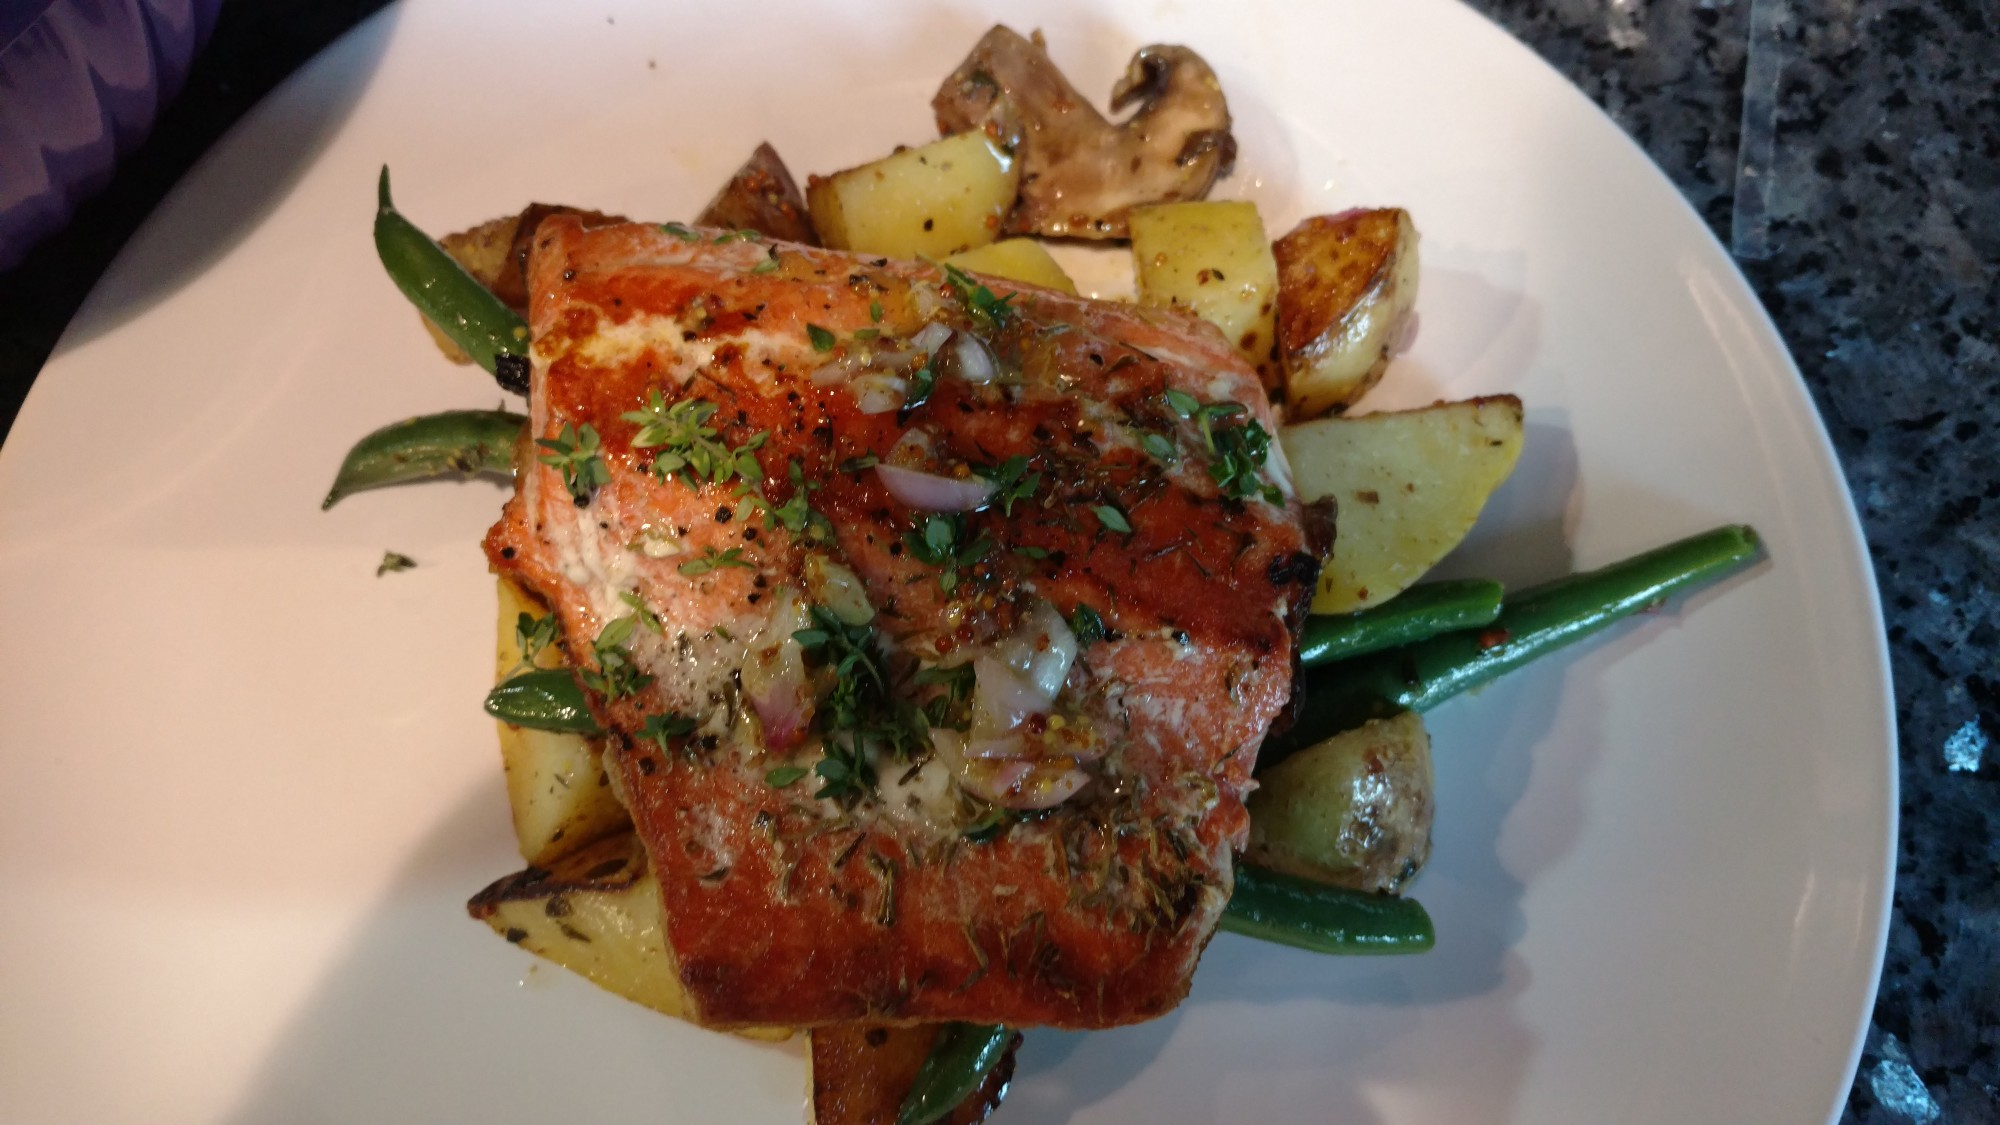 Blue apron salmon - Donning The Blue Apron 5 Steakhouse Salmon With Thyme Saut Ed Potatoes Green Beans Mushrooms